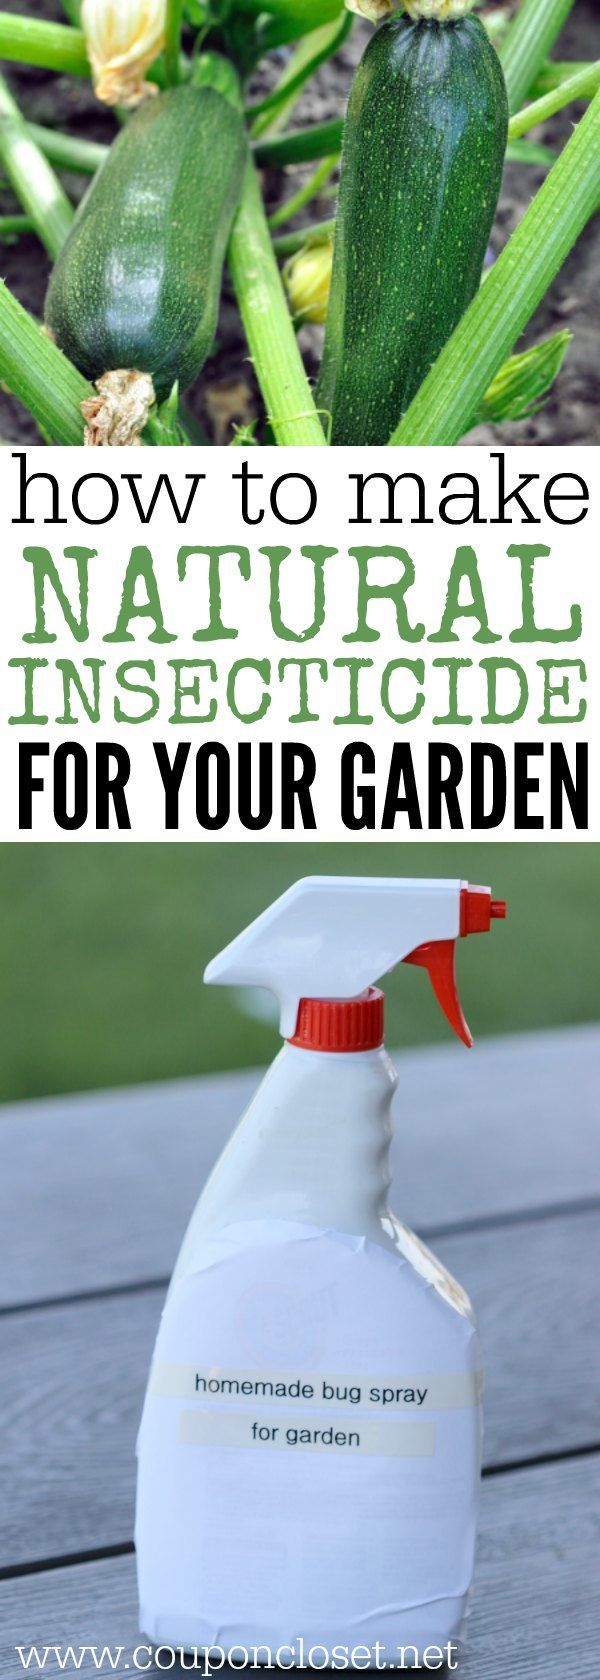 17 Best ideas about Homemade Insecticide on Pinterest Gardening